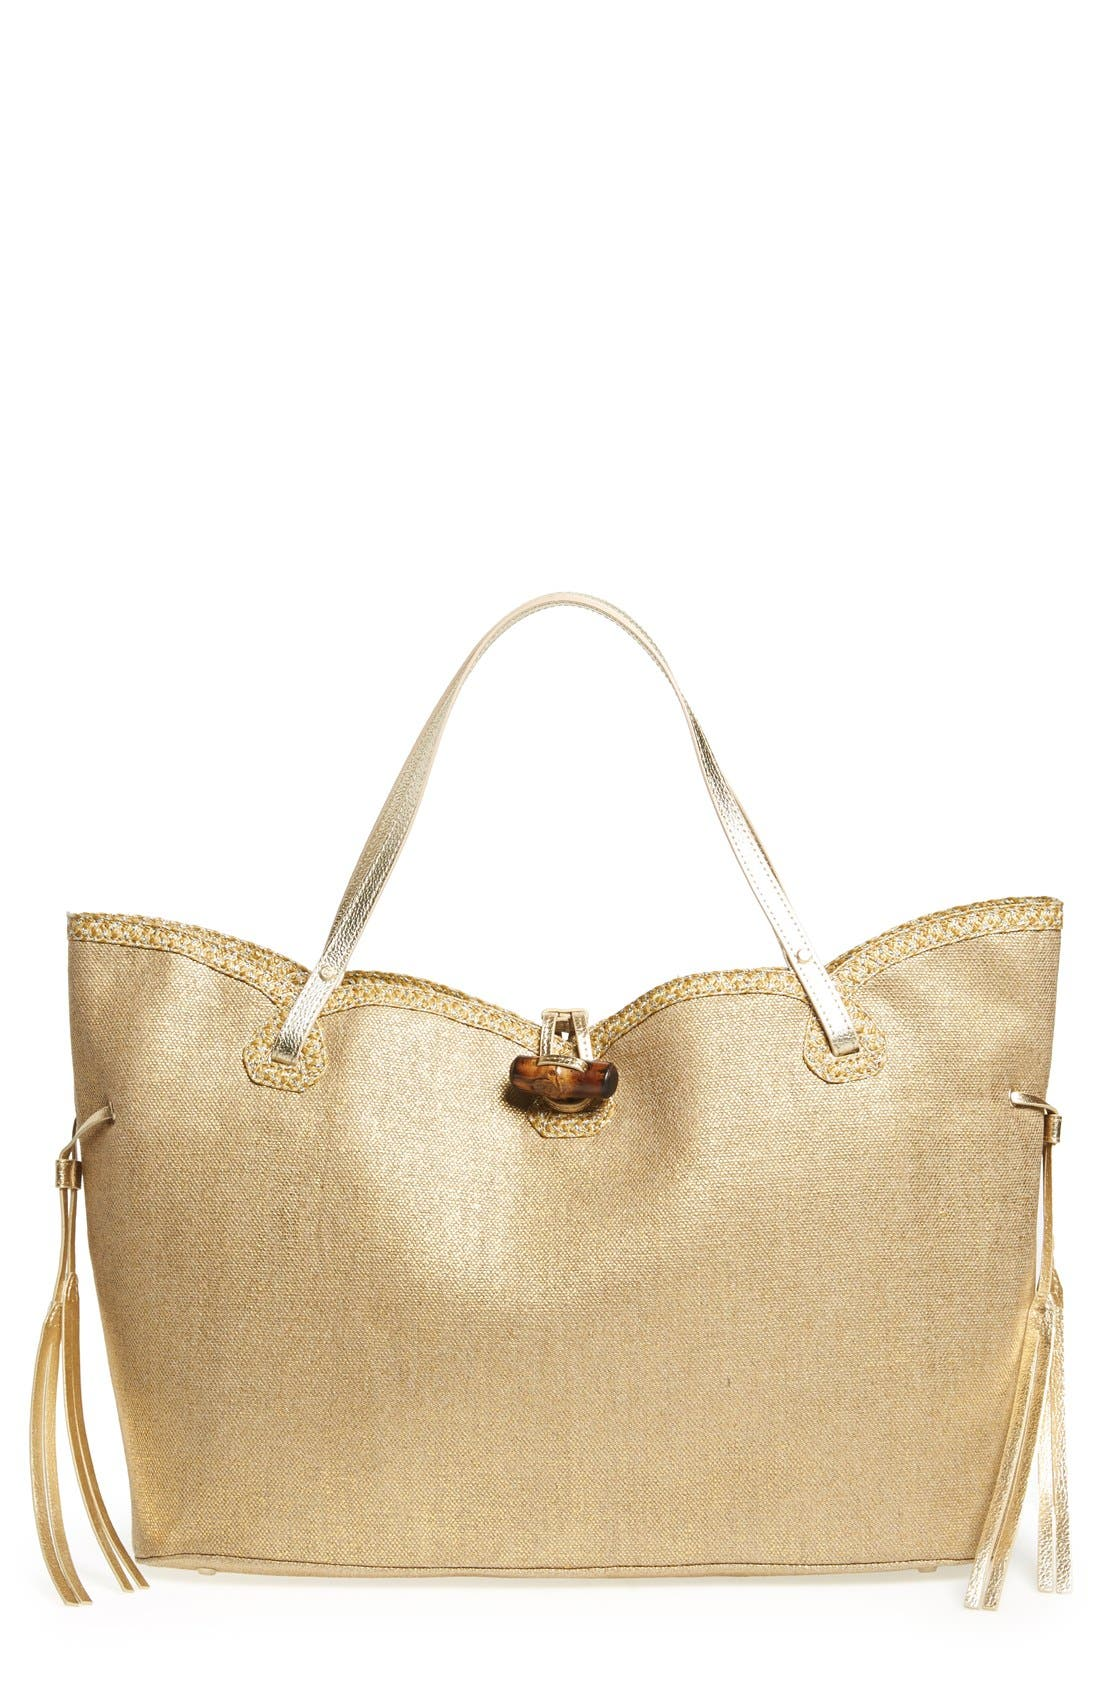 Alternate Image 1 Selected - Eric Javits 'Tuti' Shopper Tote